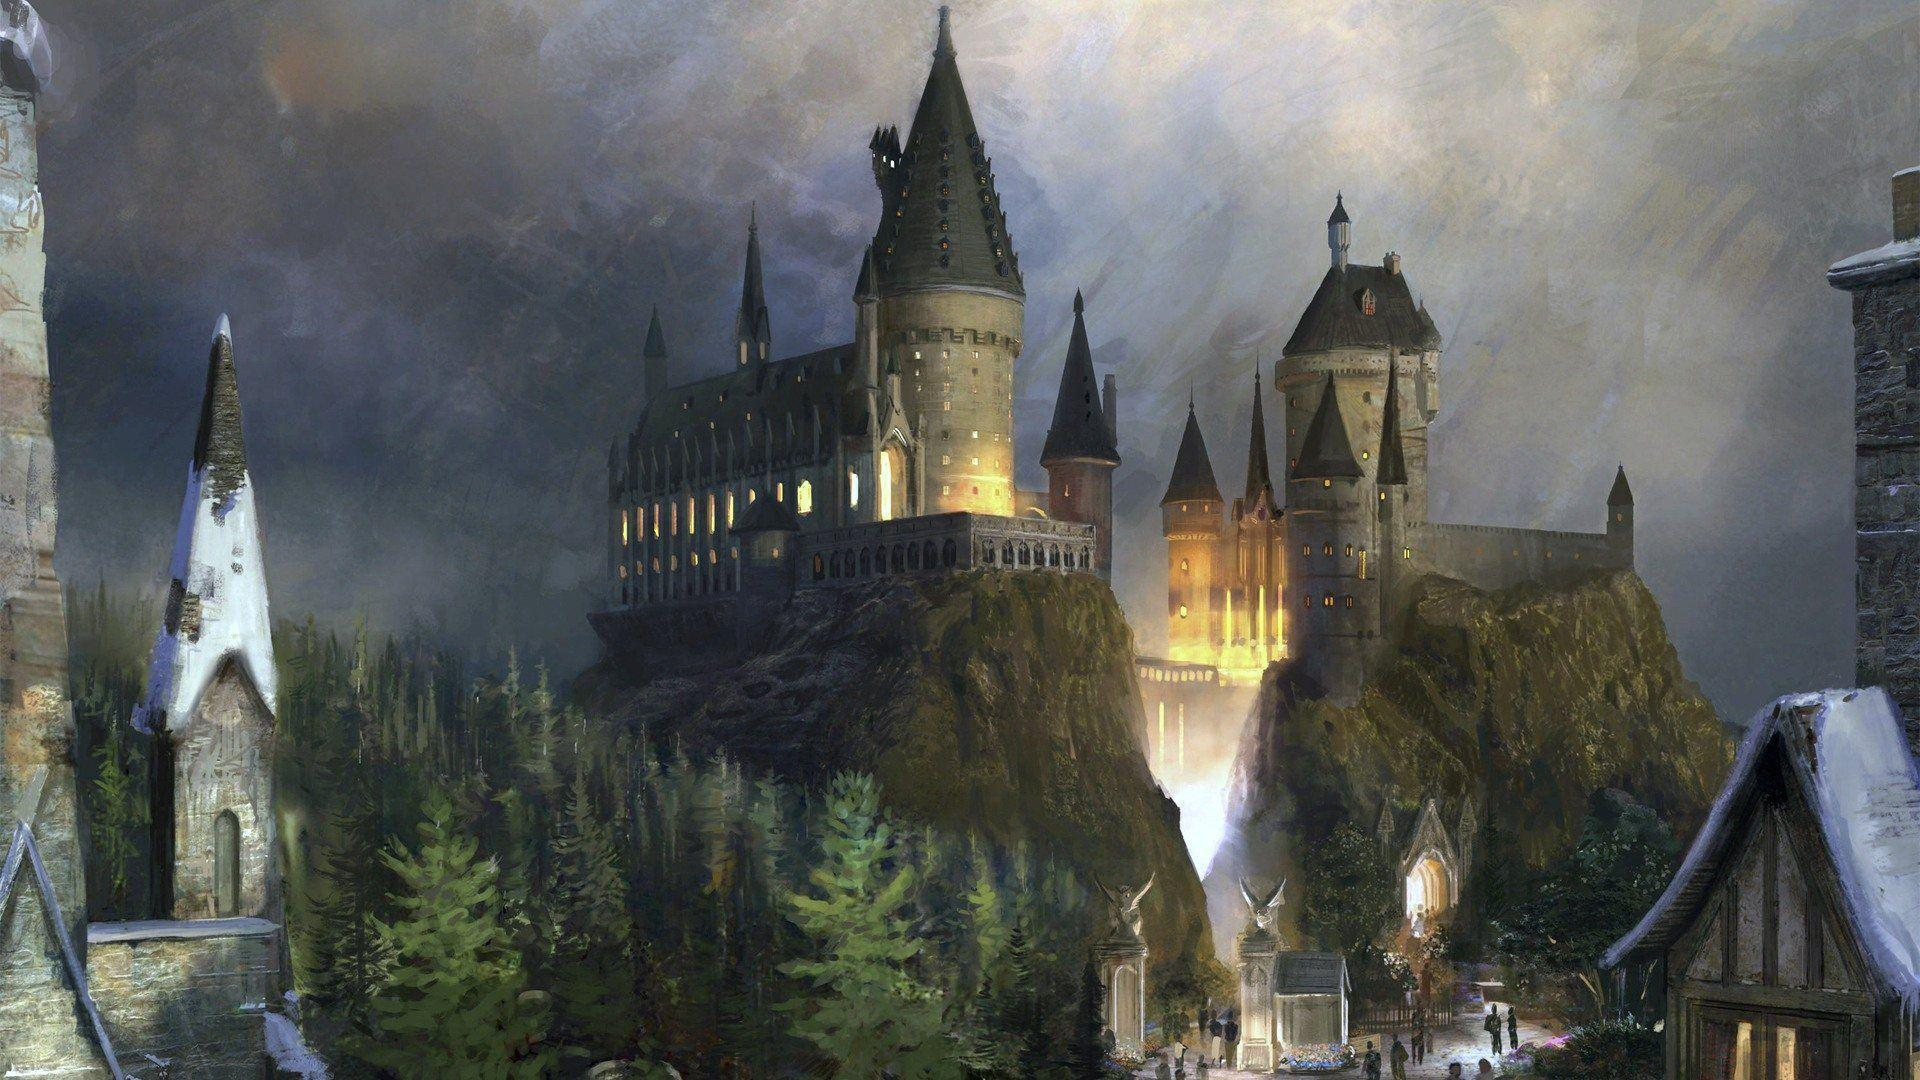 Hogwarts Castle Wallpapers Wallpaper Cave